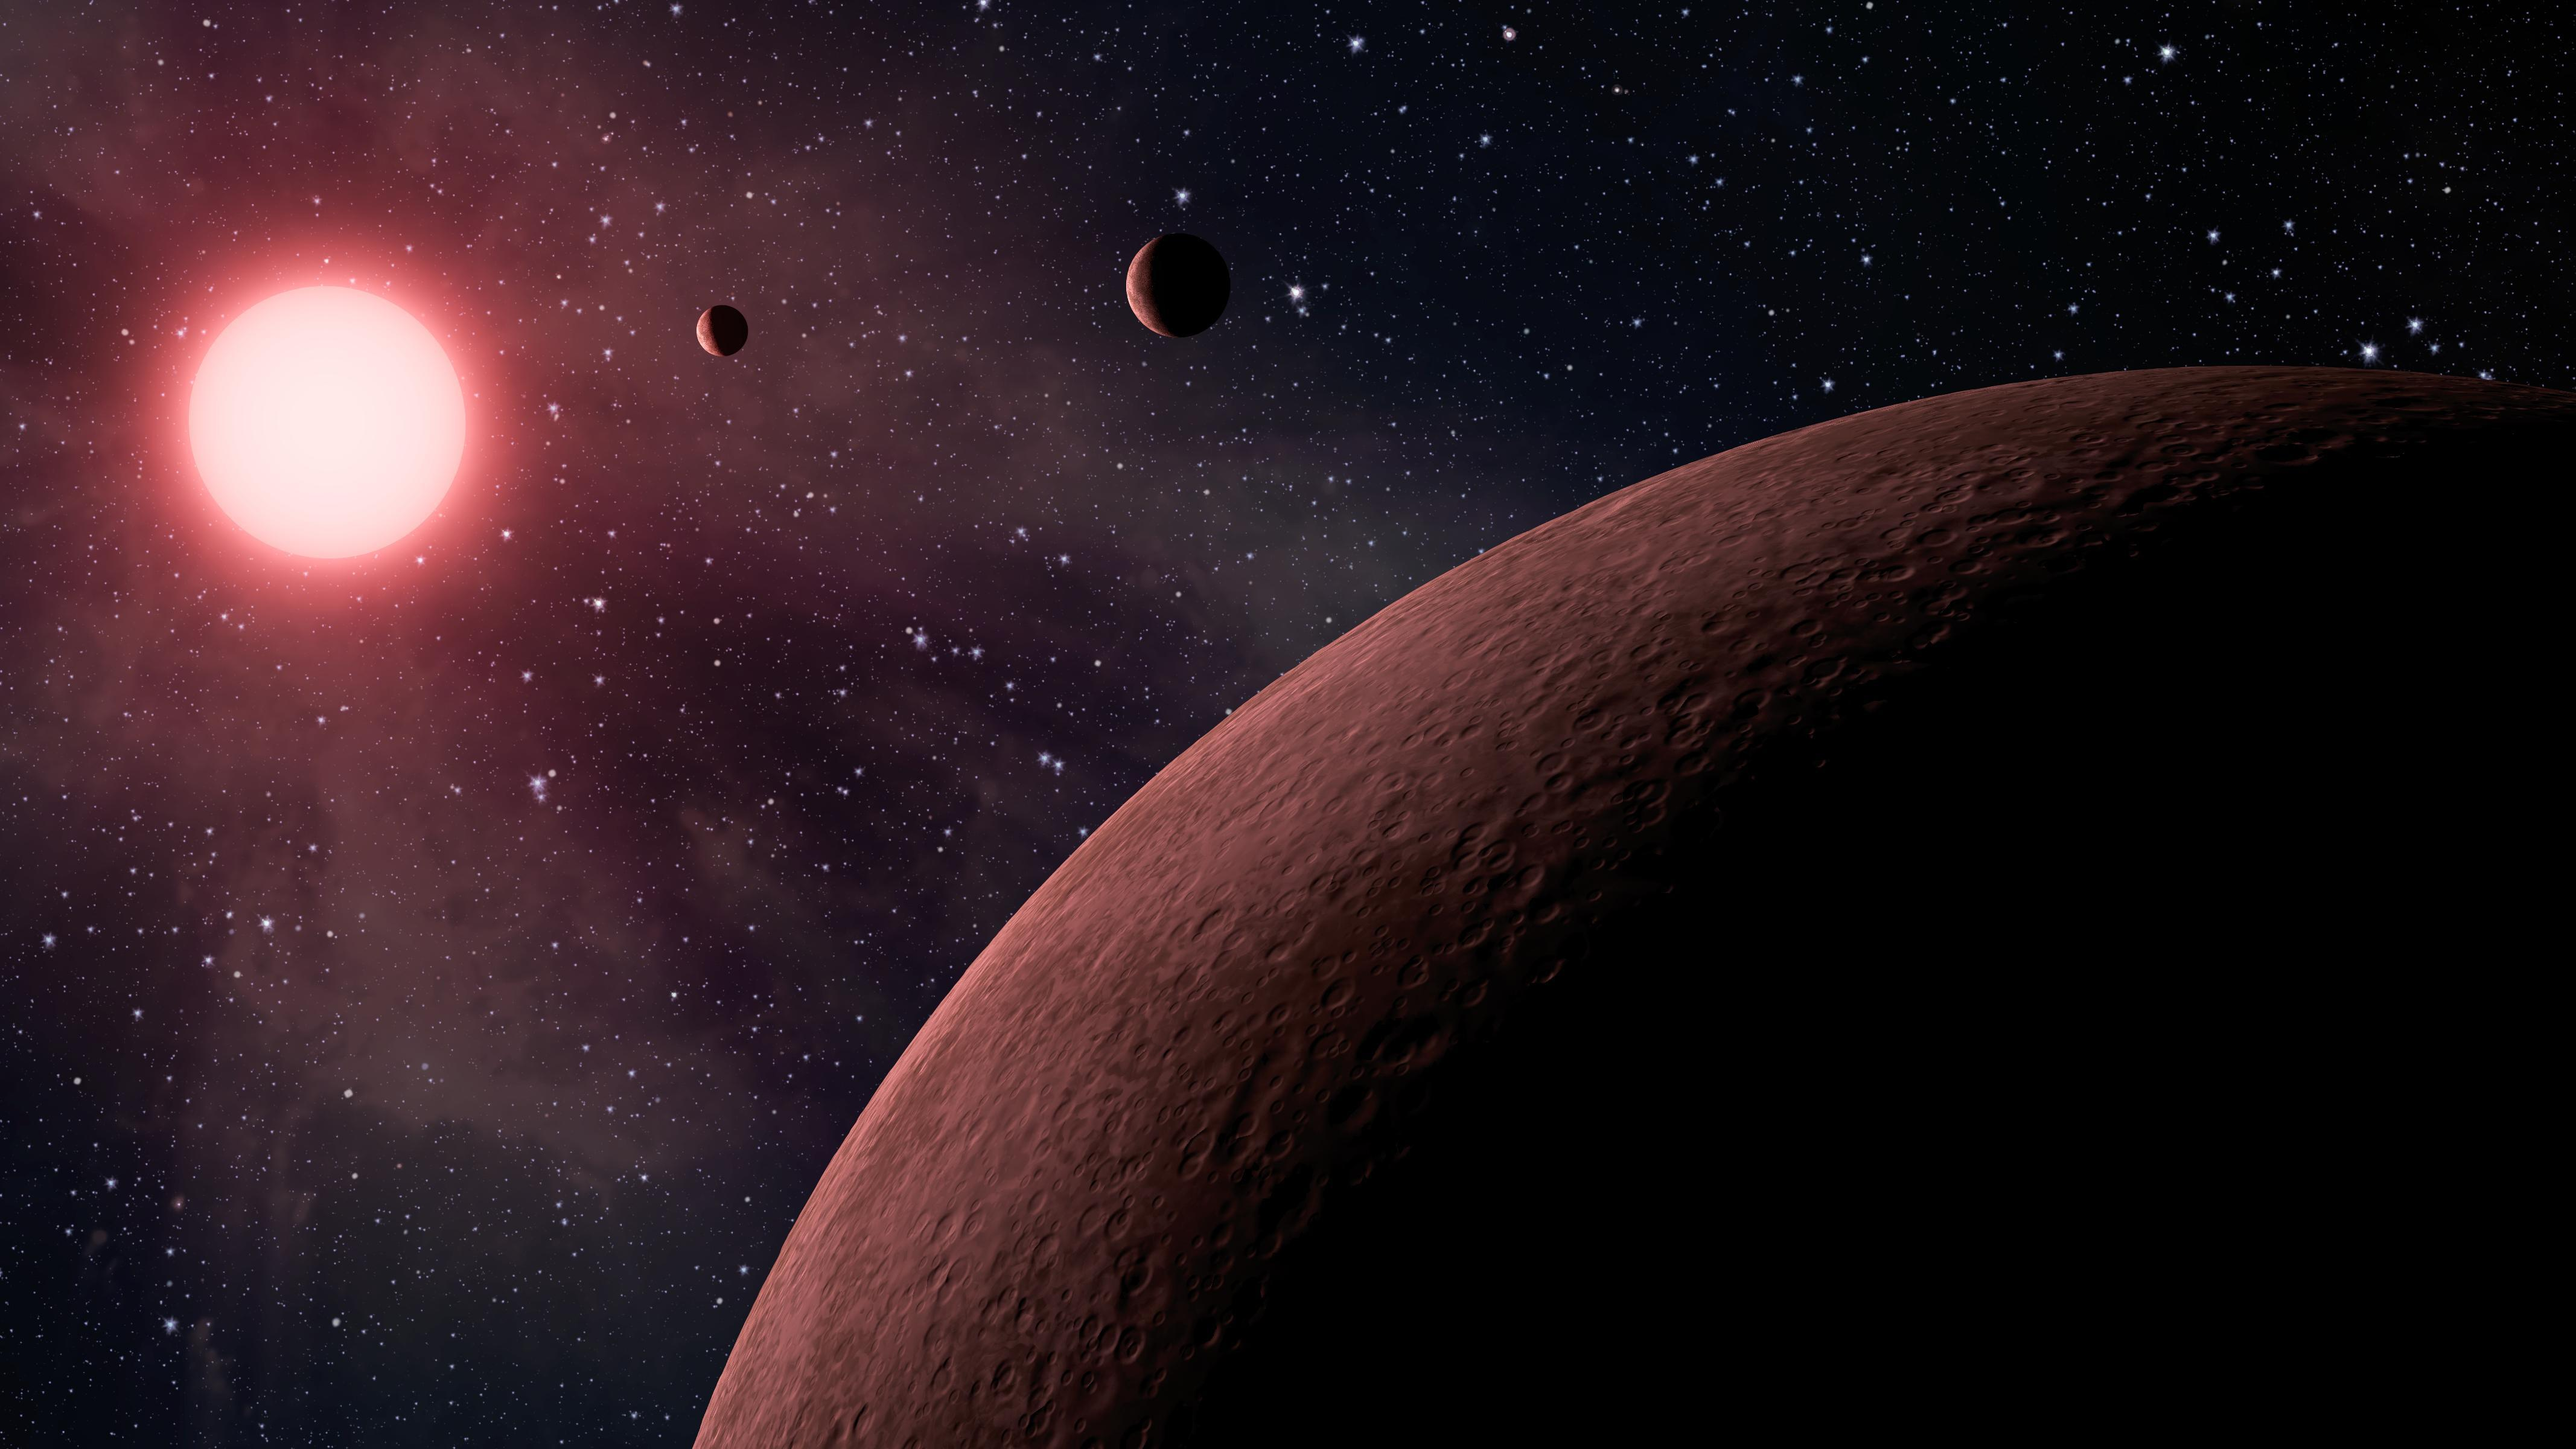 Astronomers using data from NASA's Kepler mission have discovered the three smallest planets yet detected orbiting a star beyond our sun.